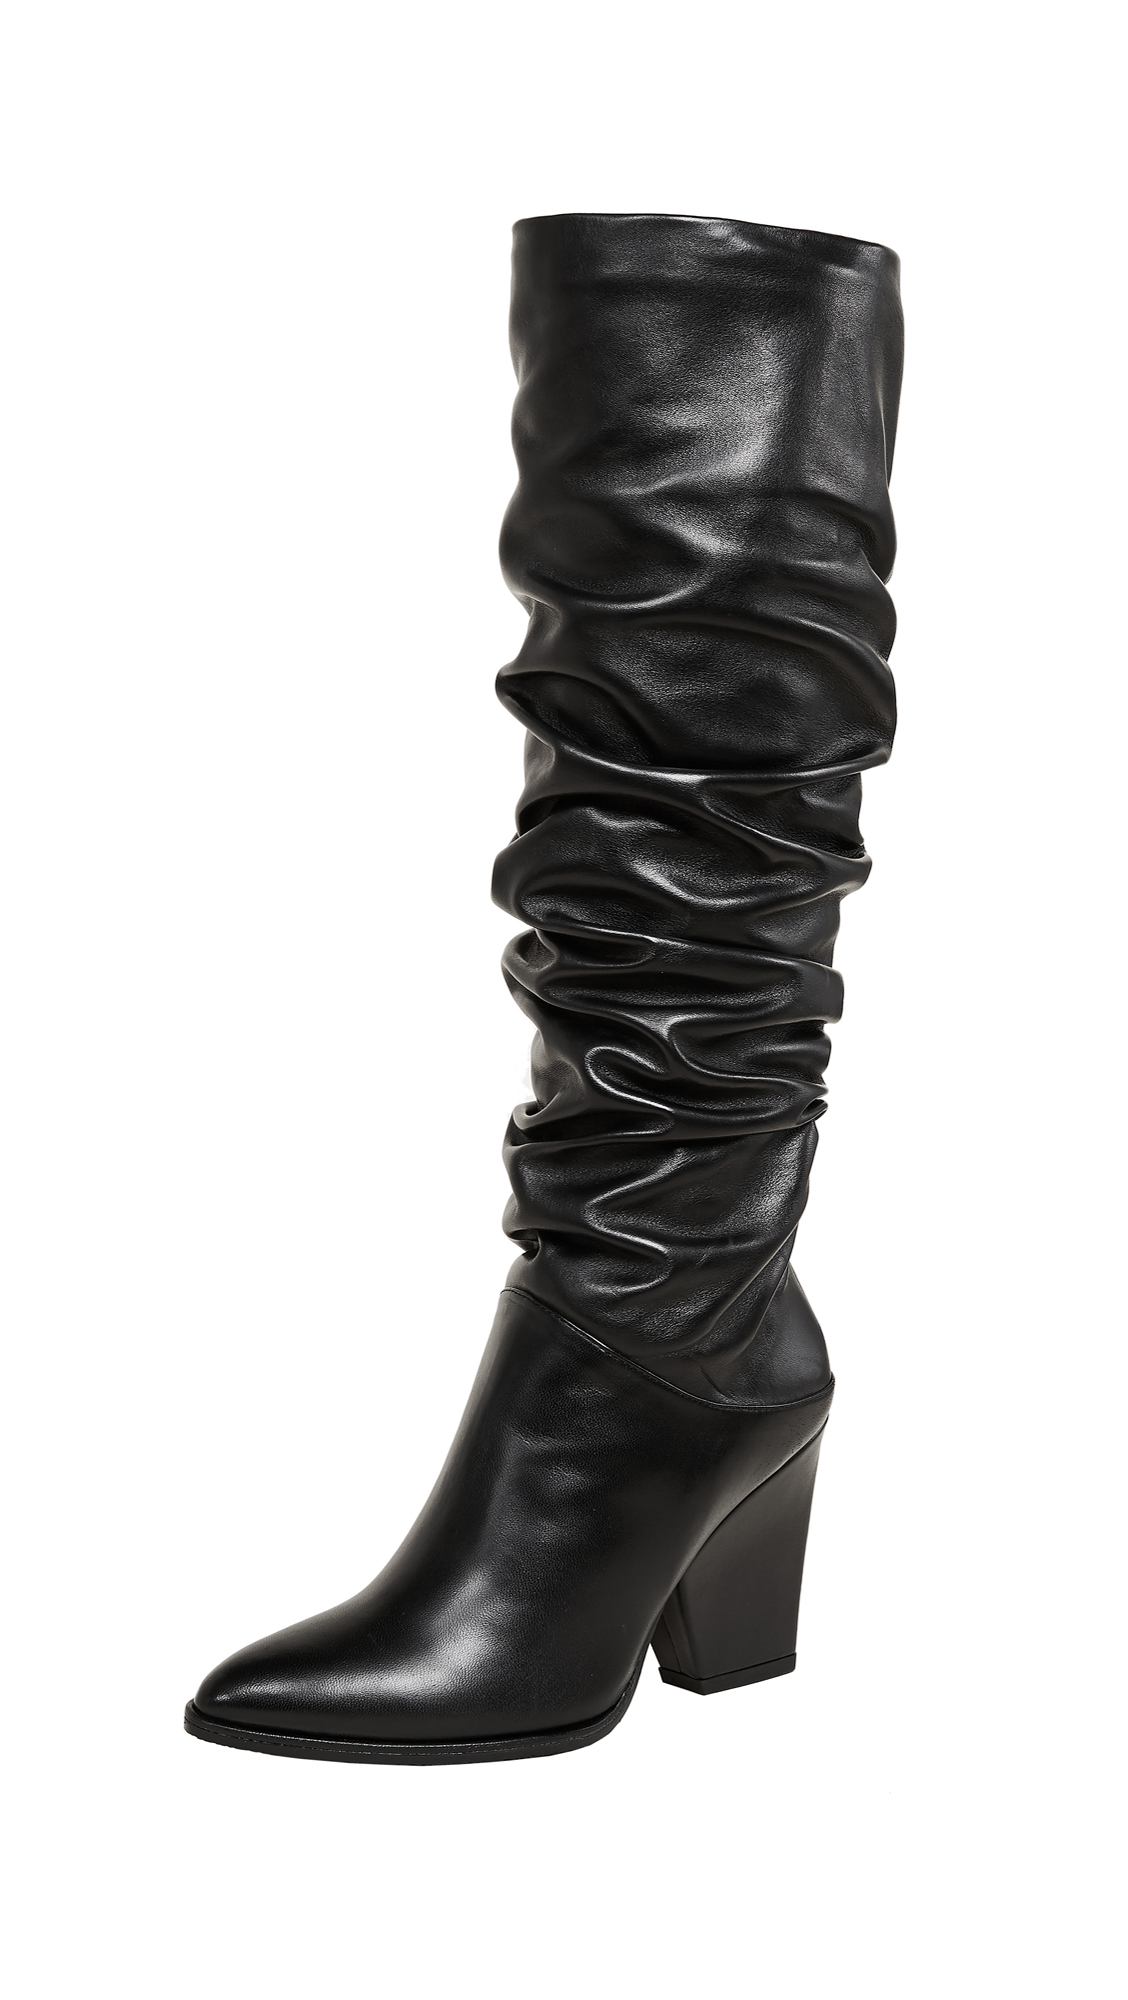 Stuart Weitzman Smashing Knee High Boots - Black